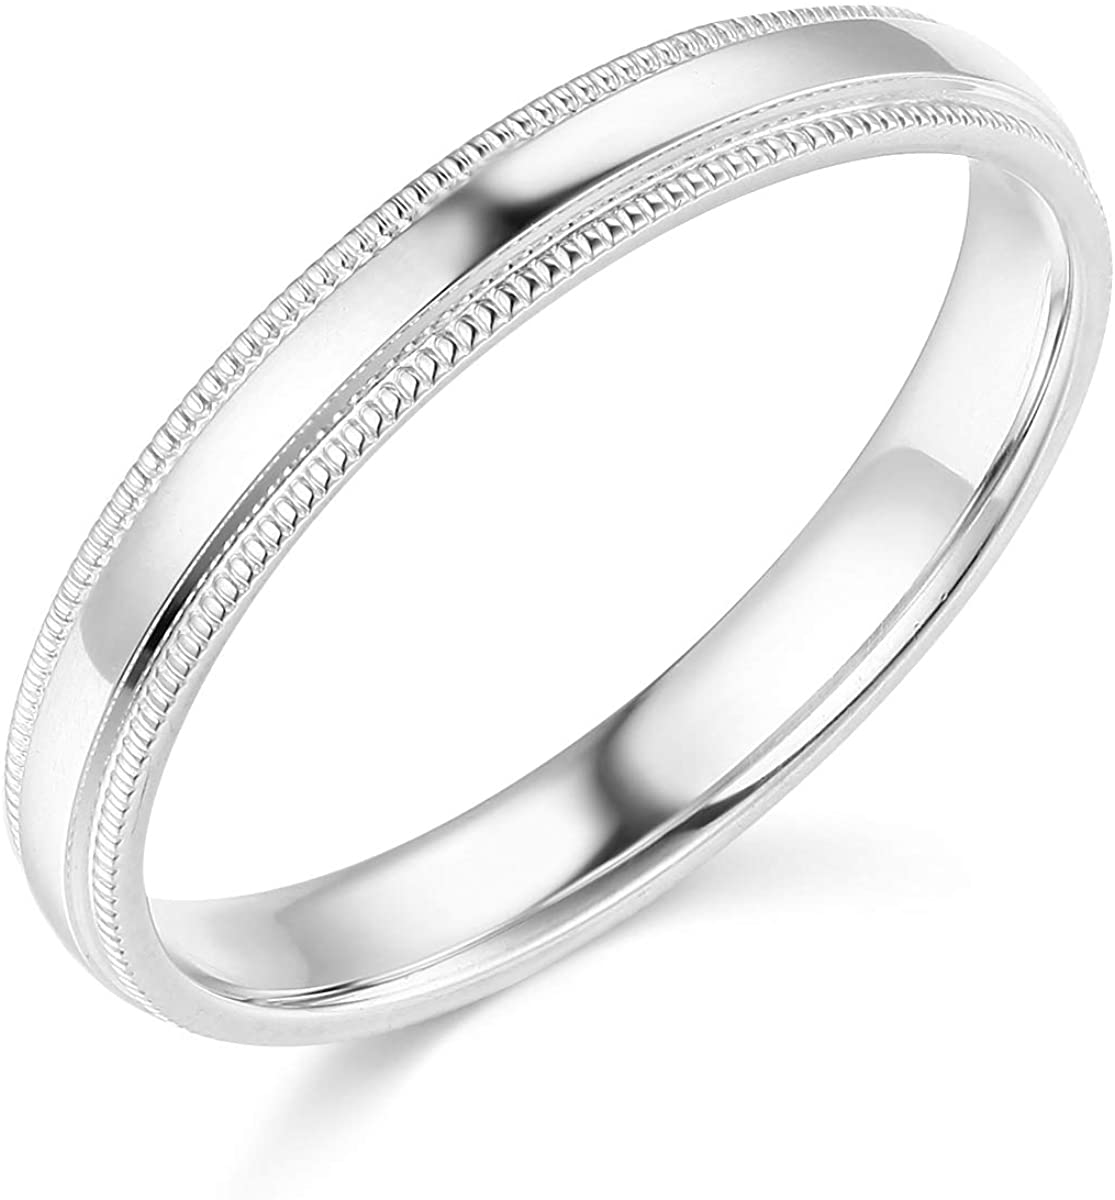 Wellingsale Ladies 14k Yellow -OR- White Gold Solid 3mm COMFORT FIT Milgrain Traditional Wedding Band Ring